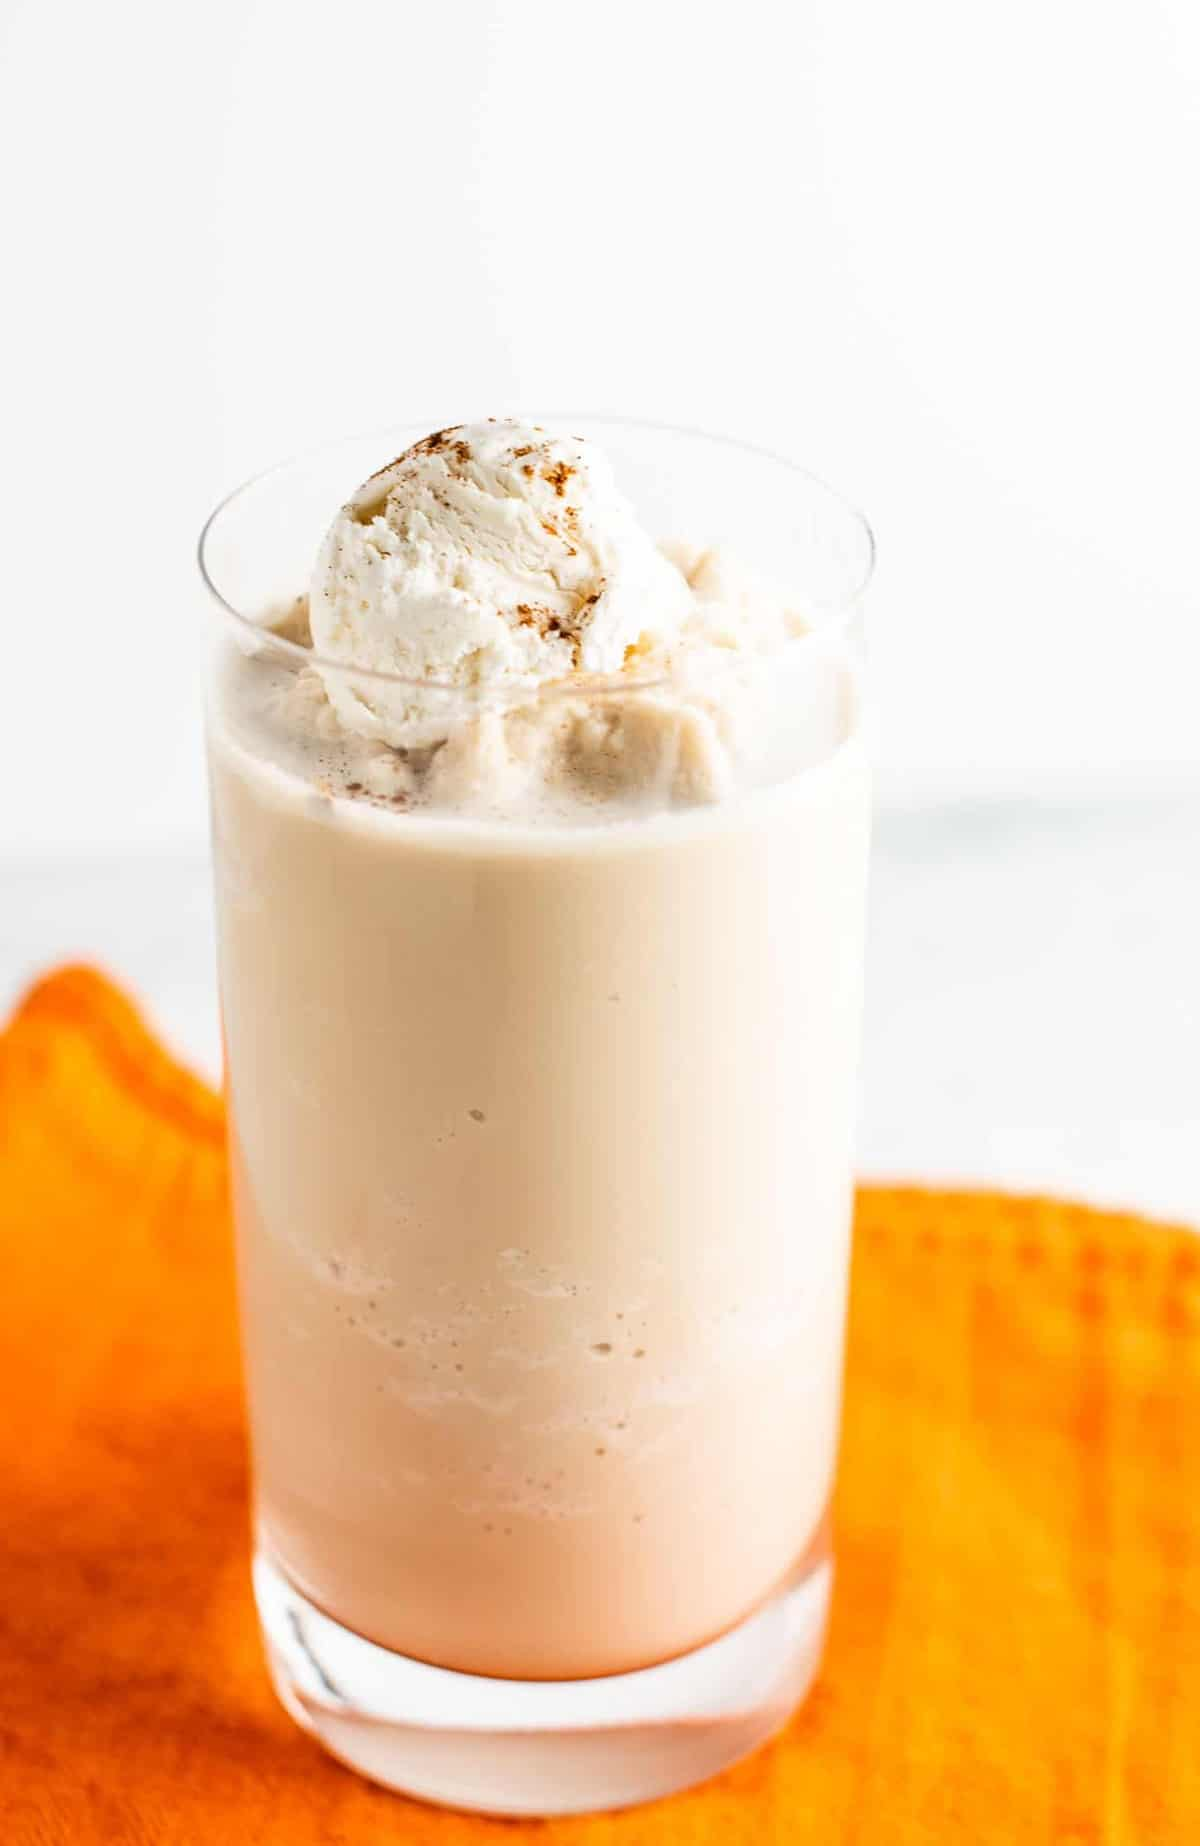 pumpkin spice frozen coffee in a clear glass on an orange napkin